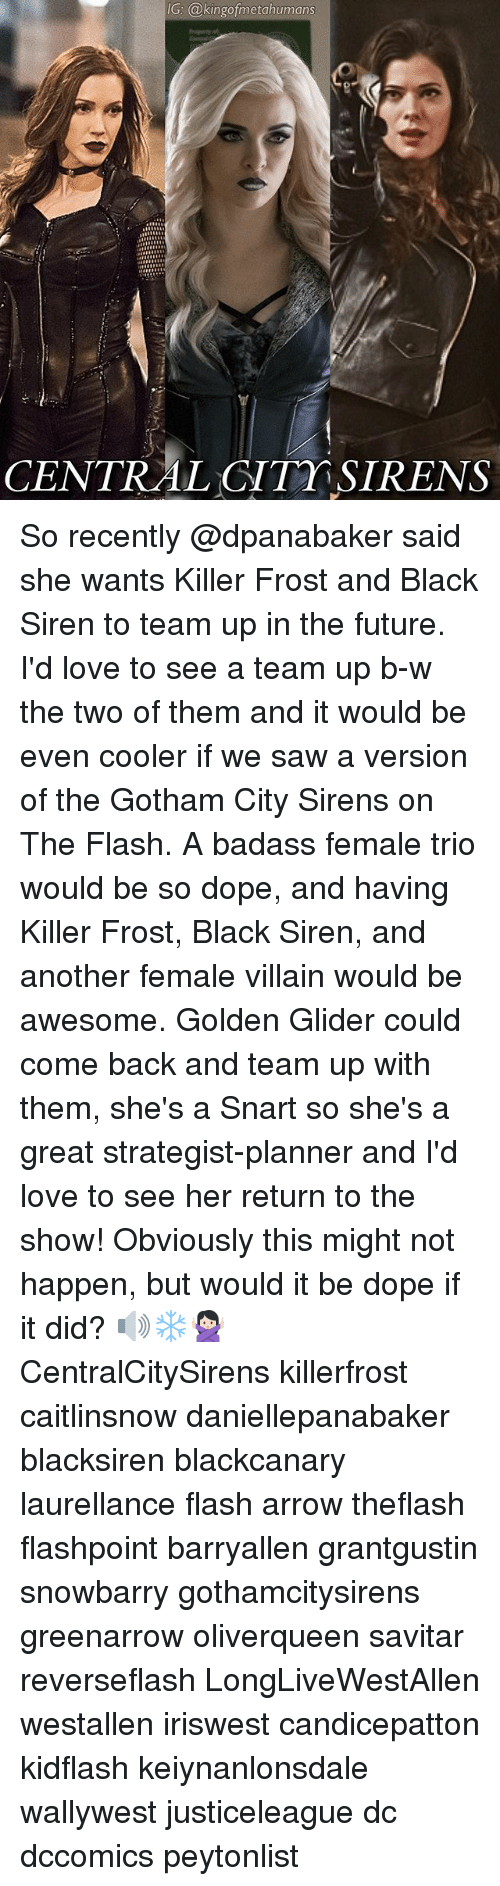 Dope, Future, and Love: IG: @kingofmetahumans  CENTRAL CITT SIRENS So recently @dpanabaker said she wants Killer Frost and Black Siren to team up in the future. I'd love to see a team up b-w the two of them and it would be even cooler if we saw a version of the Gotham City Sirens on The Flash. A badass female trio would be so dope, and having Killer Frost, Black Siren, and another female villain would be awesome. Golden Glider could come back and team up with them, she's a Snart so she's a great strategist-planner and I'd love to see her return to the show! Obviously this might not happen, but would it be dope if it did? 🔊❄️🙅🏻 CentralCitySirens killerfrost caitlinsnow daniellepanabaker blacksiren blackcanary laurellance flash arrow theflash flashpoint barryallen grantgustin snowbarry gothamcitysirens greenarrow oliverqueen savitar reverseflash LongLiveWestAllen westallen iriswest candicepatton kidflash keiynanlonsdale wallywest justiceleague dc dccomics peytonlist